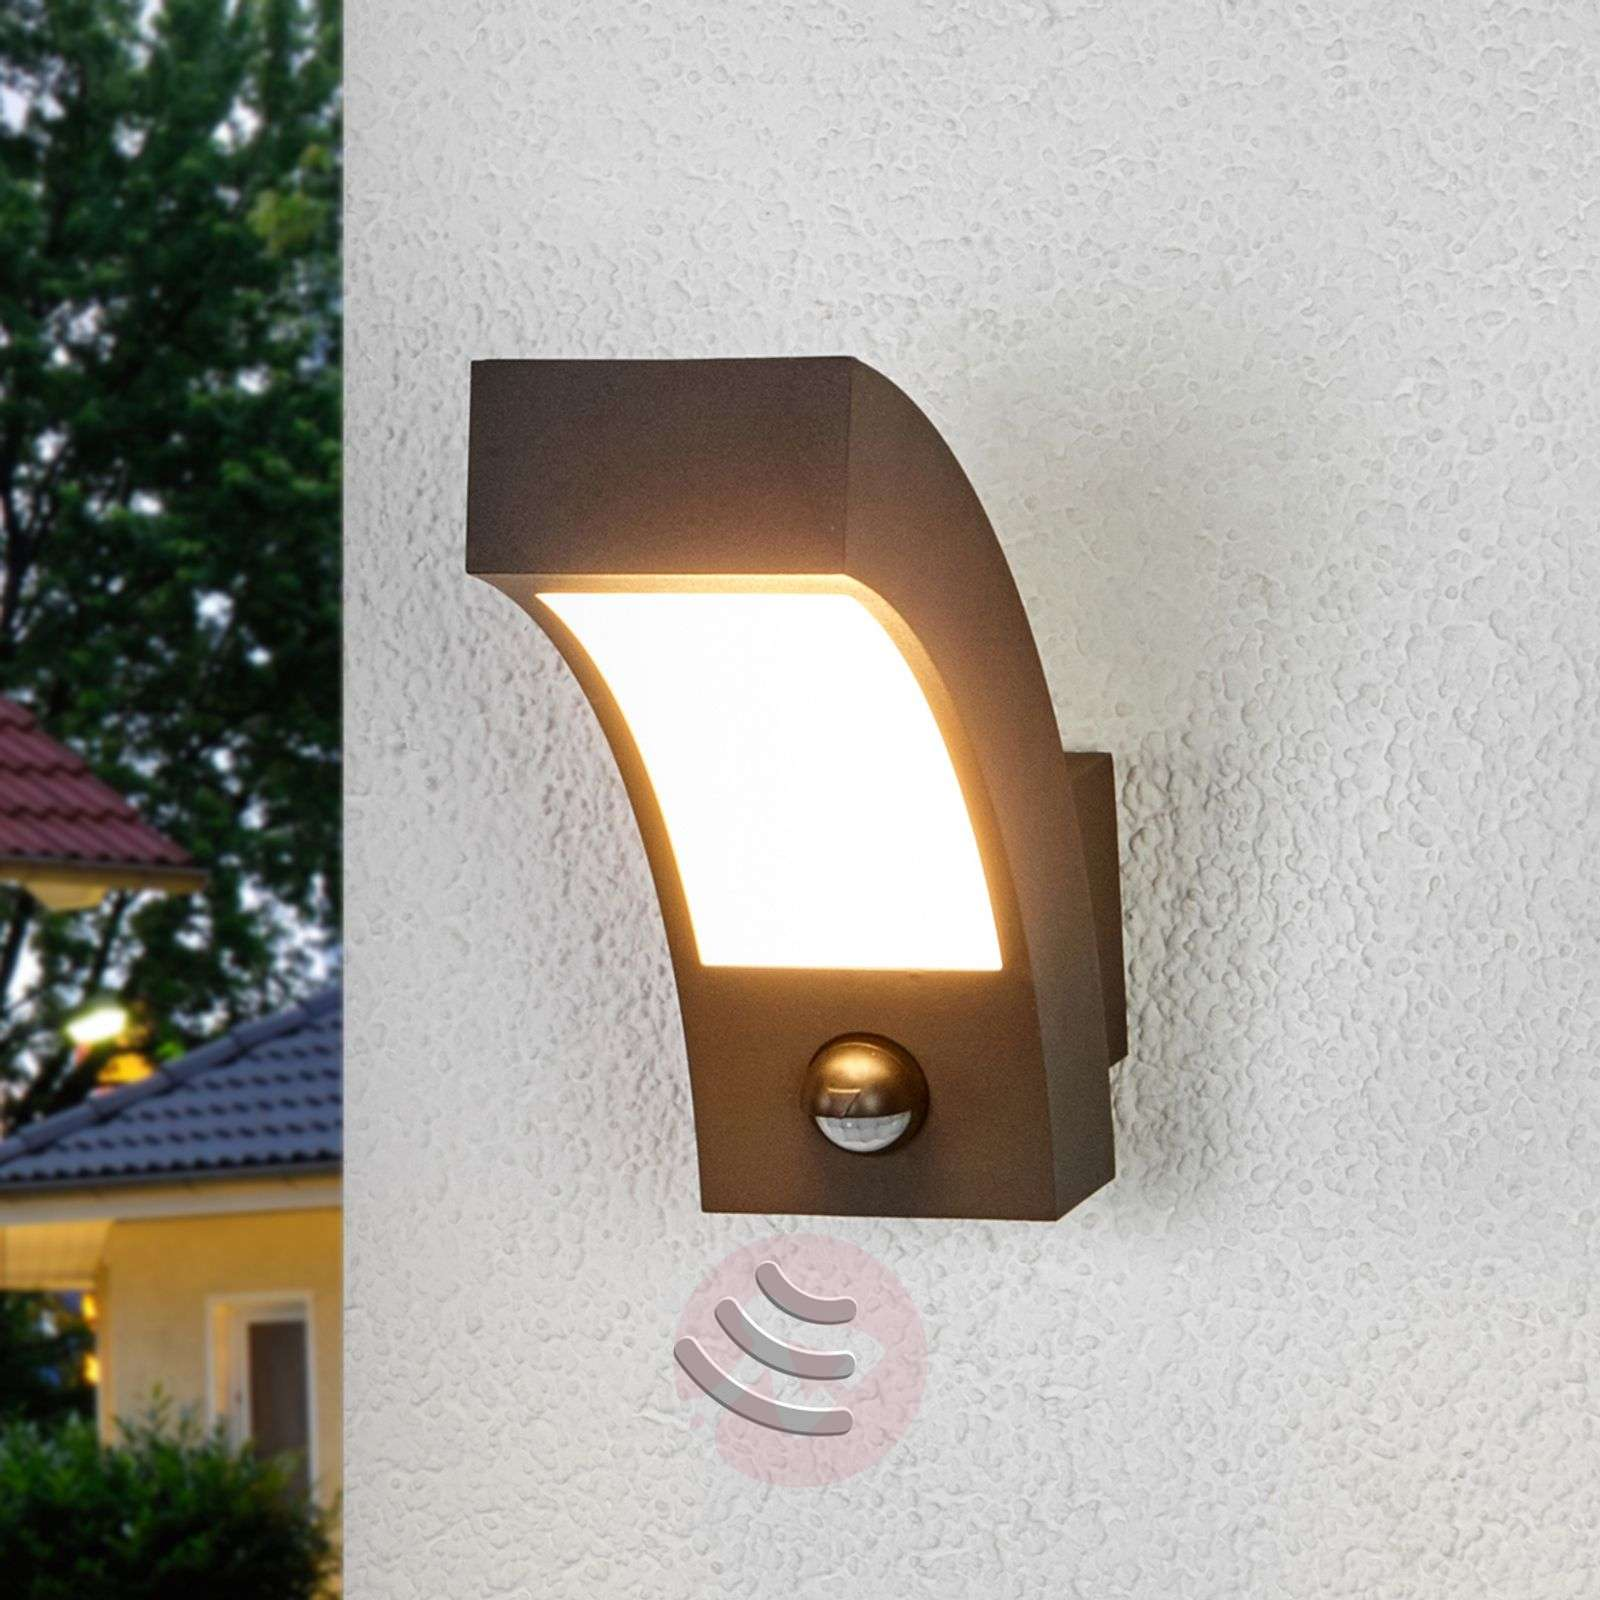 Lennik LED Exterior Wall Lamp with Motion Detector-9619007-032